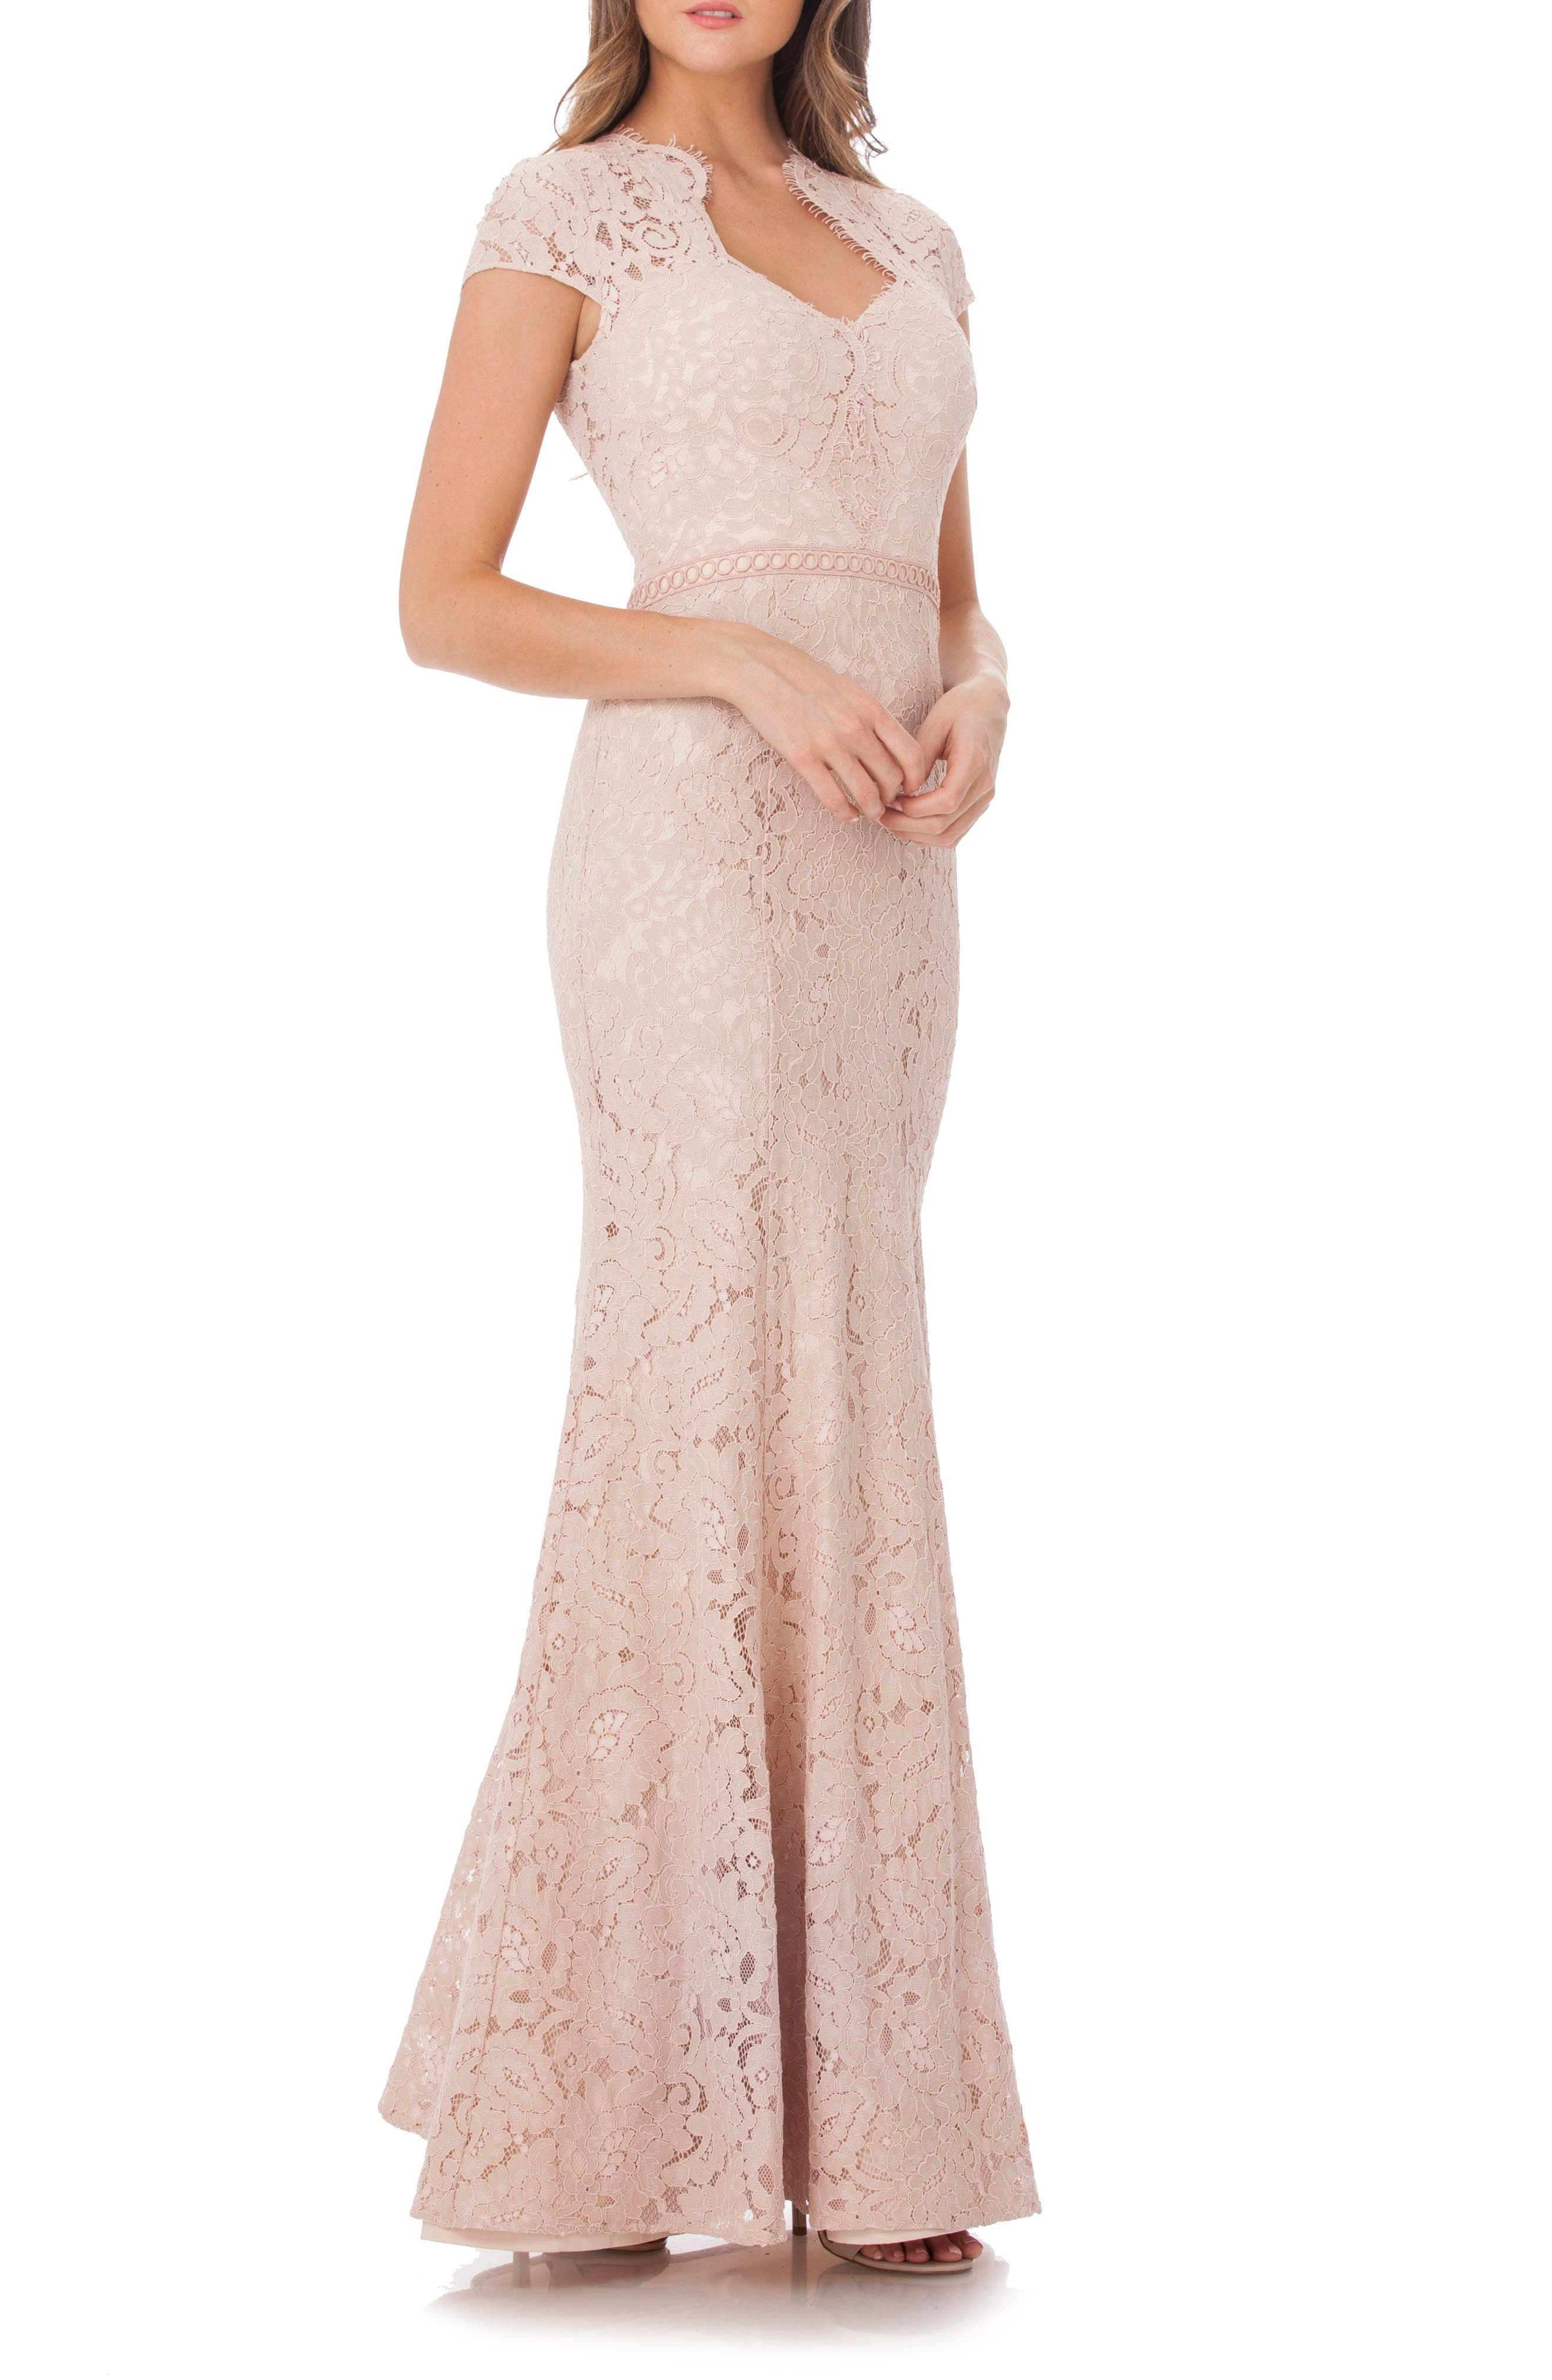 Js Collections Lace Mermaid Gown, Pink